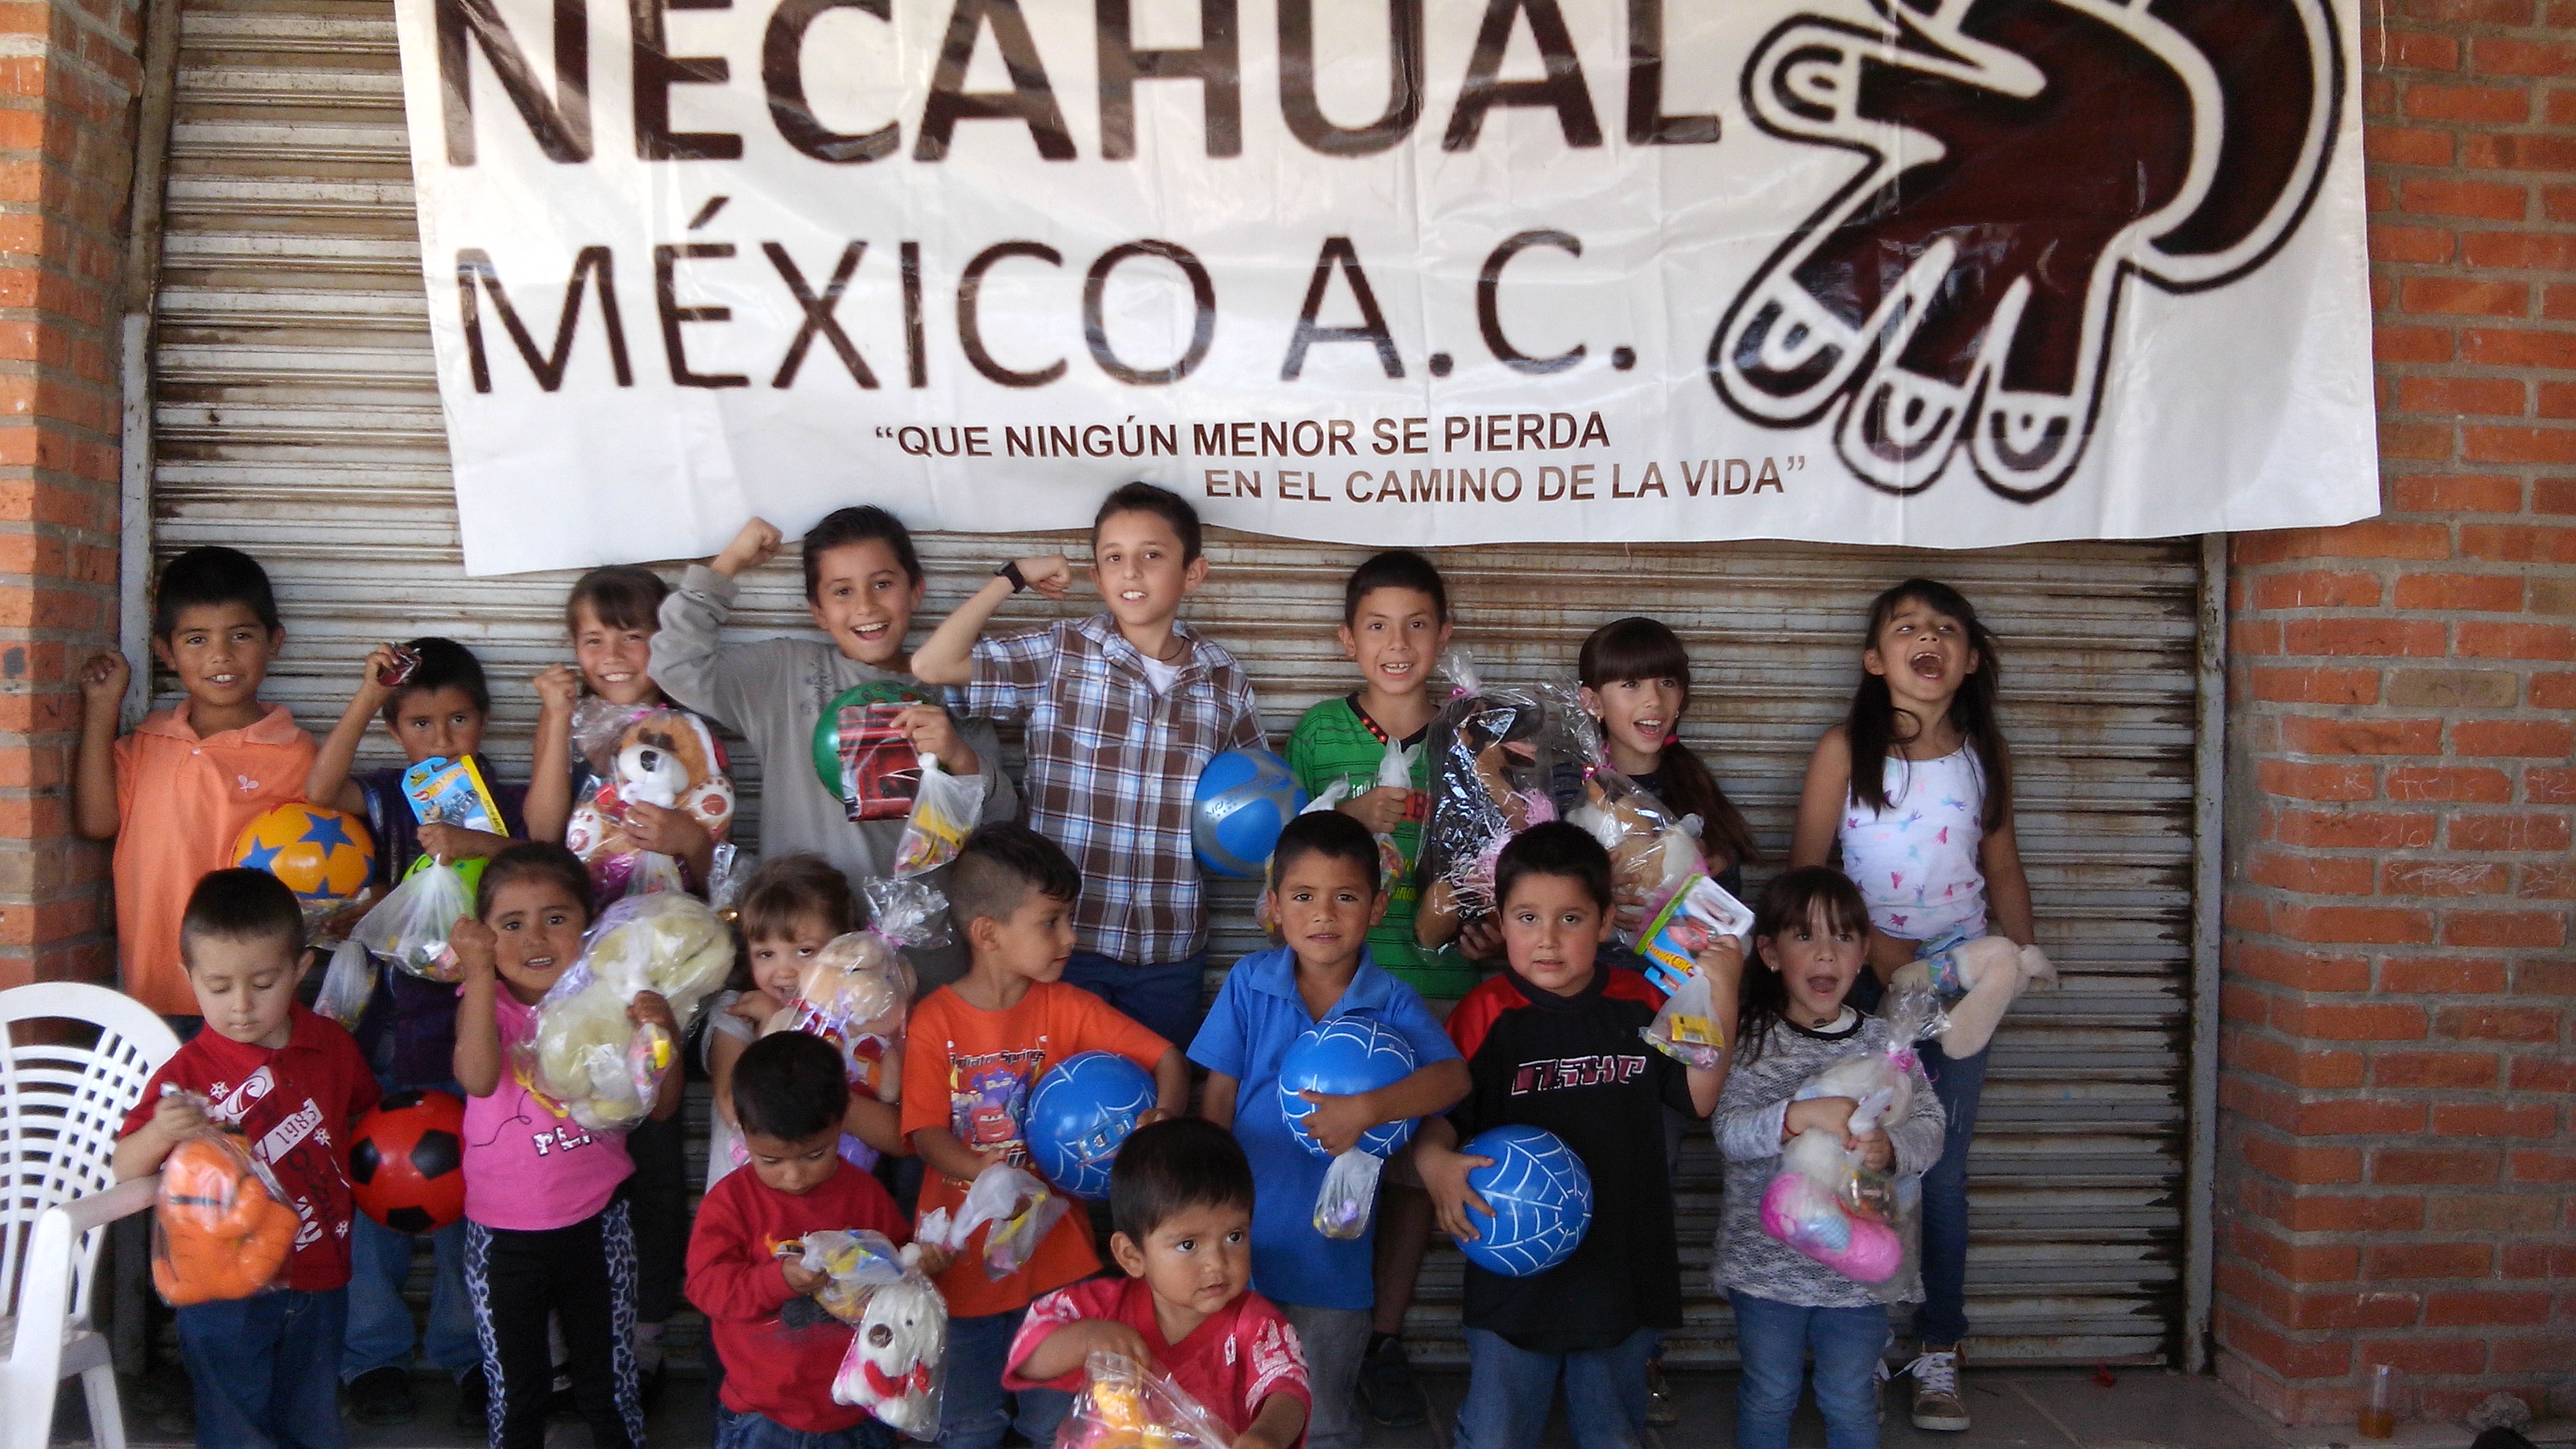 What does Necahual Foundation do?